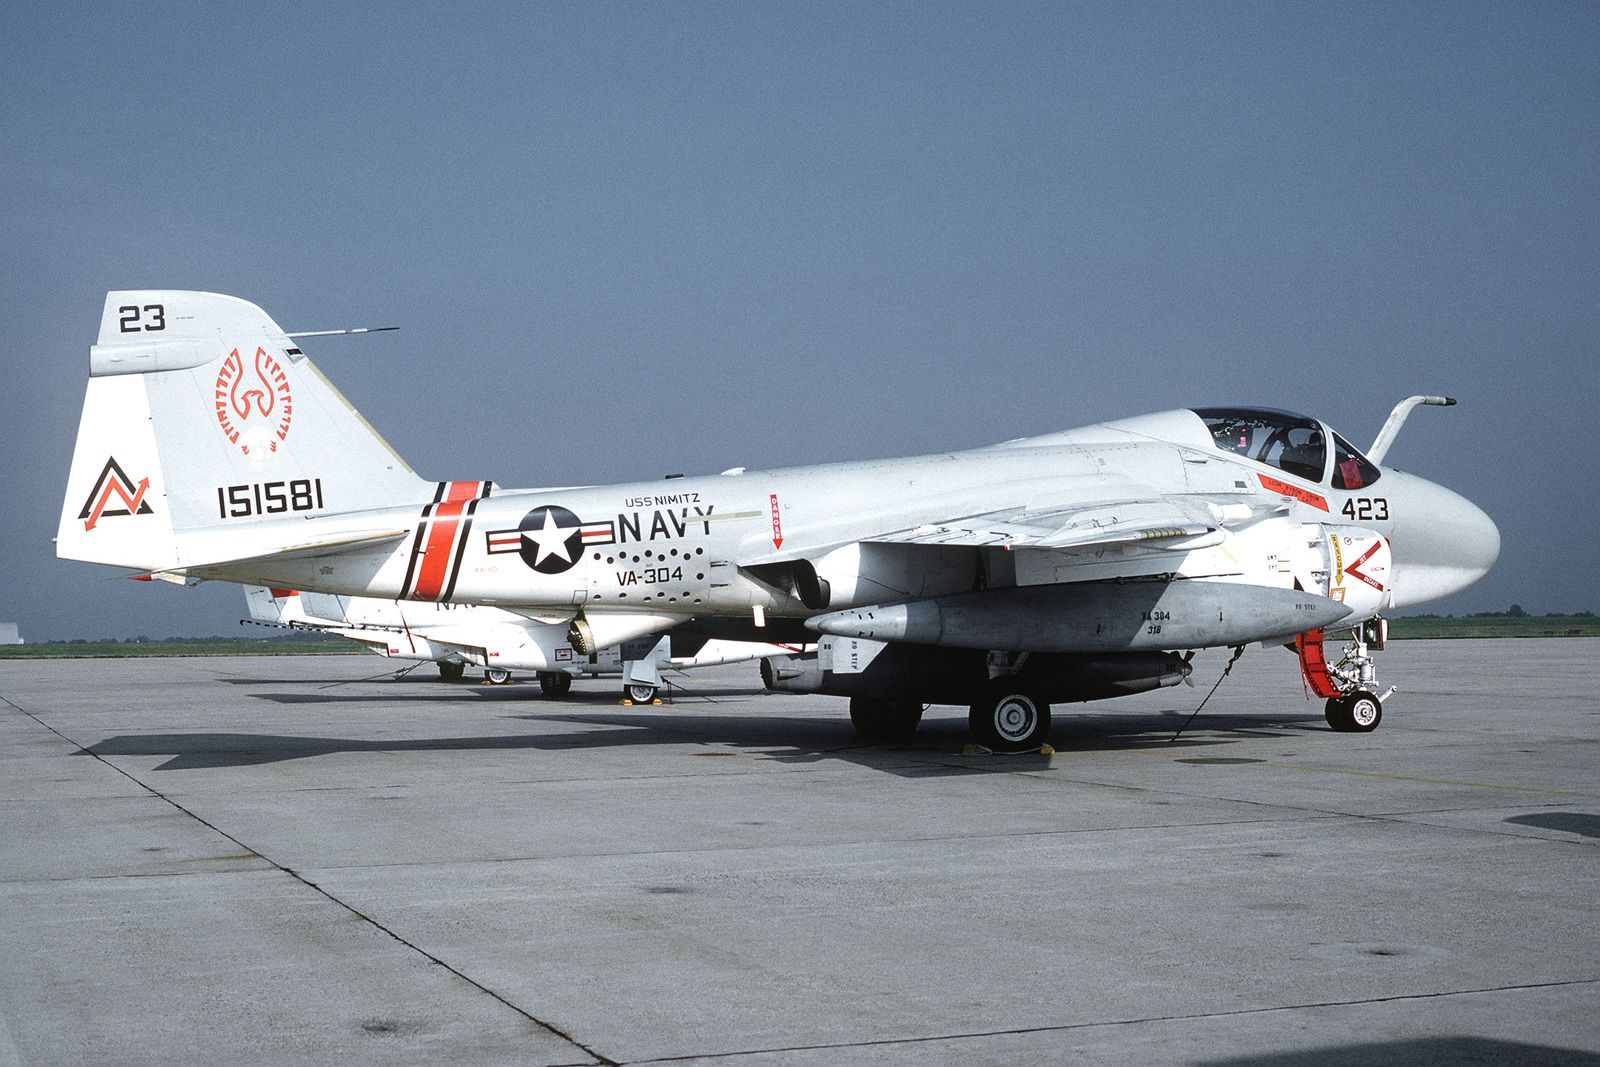 A right side view of an Attack Squadron 304 (VA304) KA6D